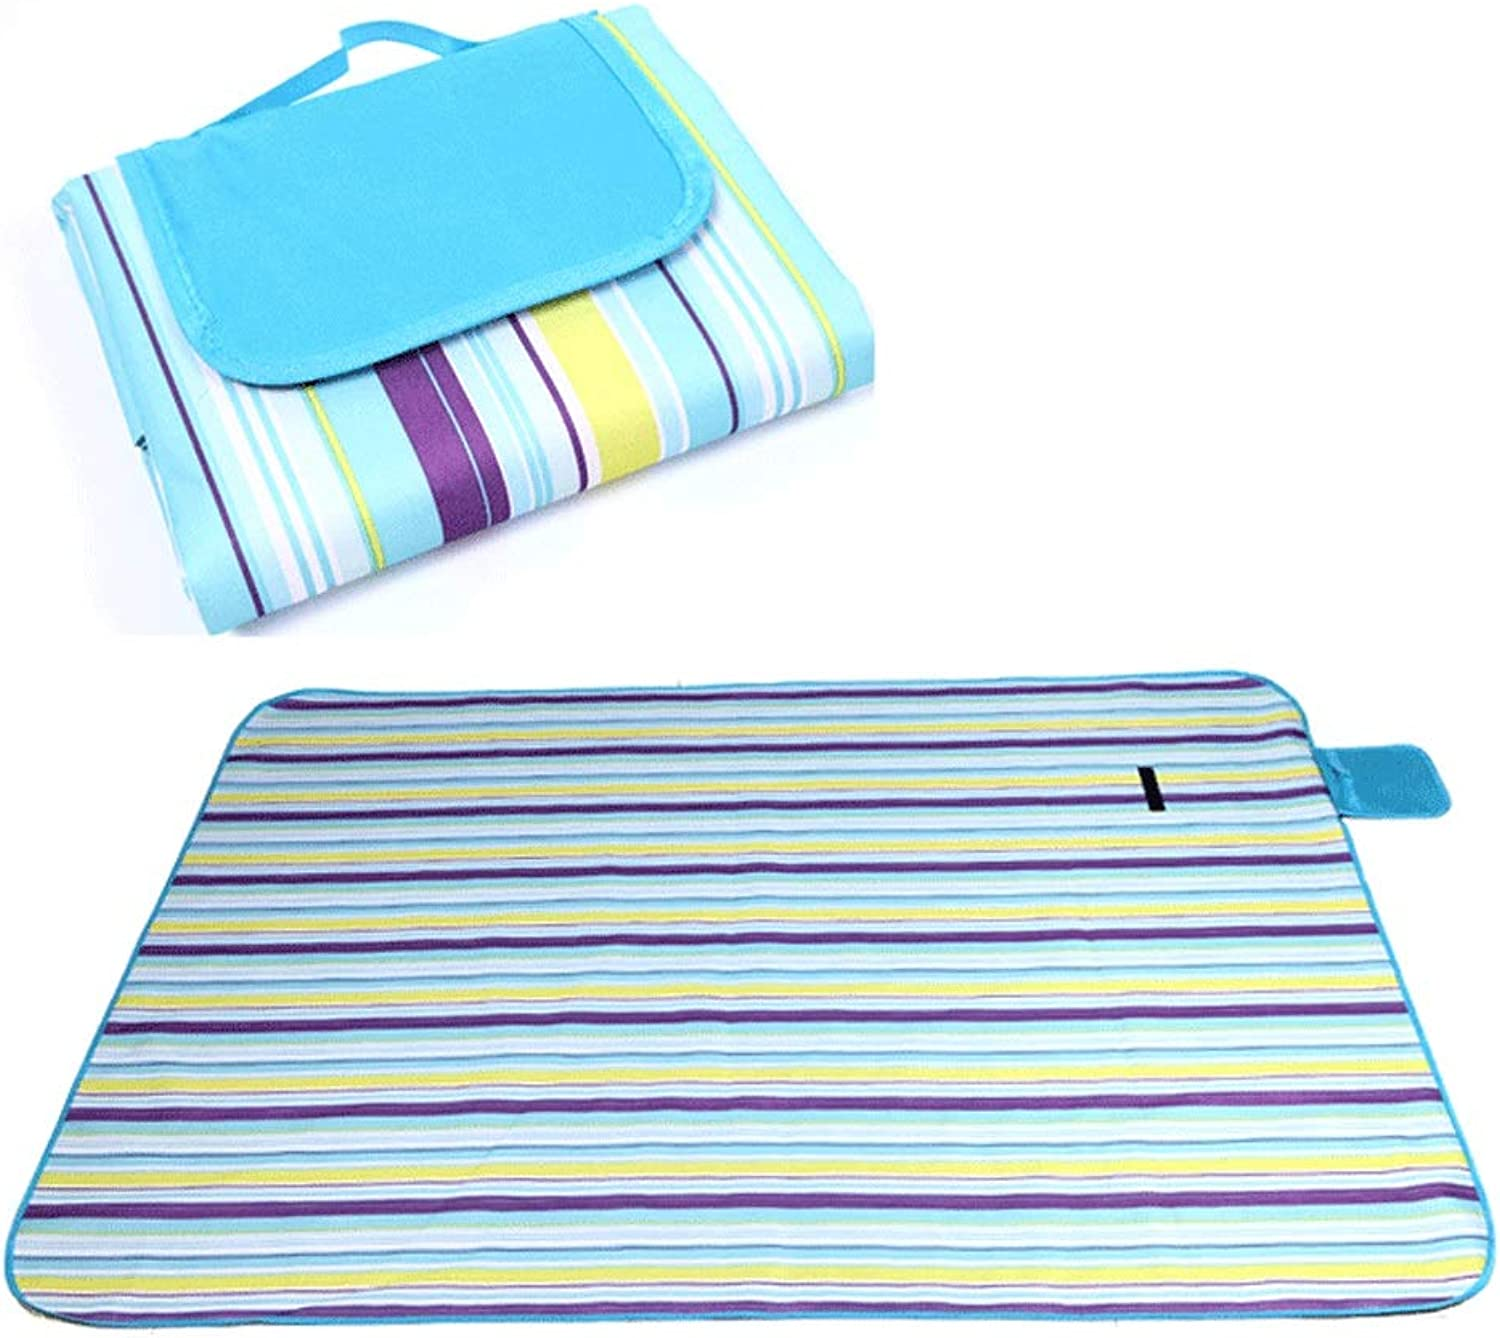 DFRgj Camping Picnic Mat with Strap, Perfect for Picnics, Beaches, RV and Outings, WeatherProof and Mold Mildew Resistant (color   D)